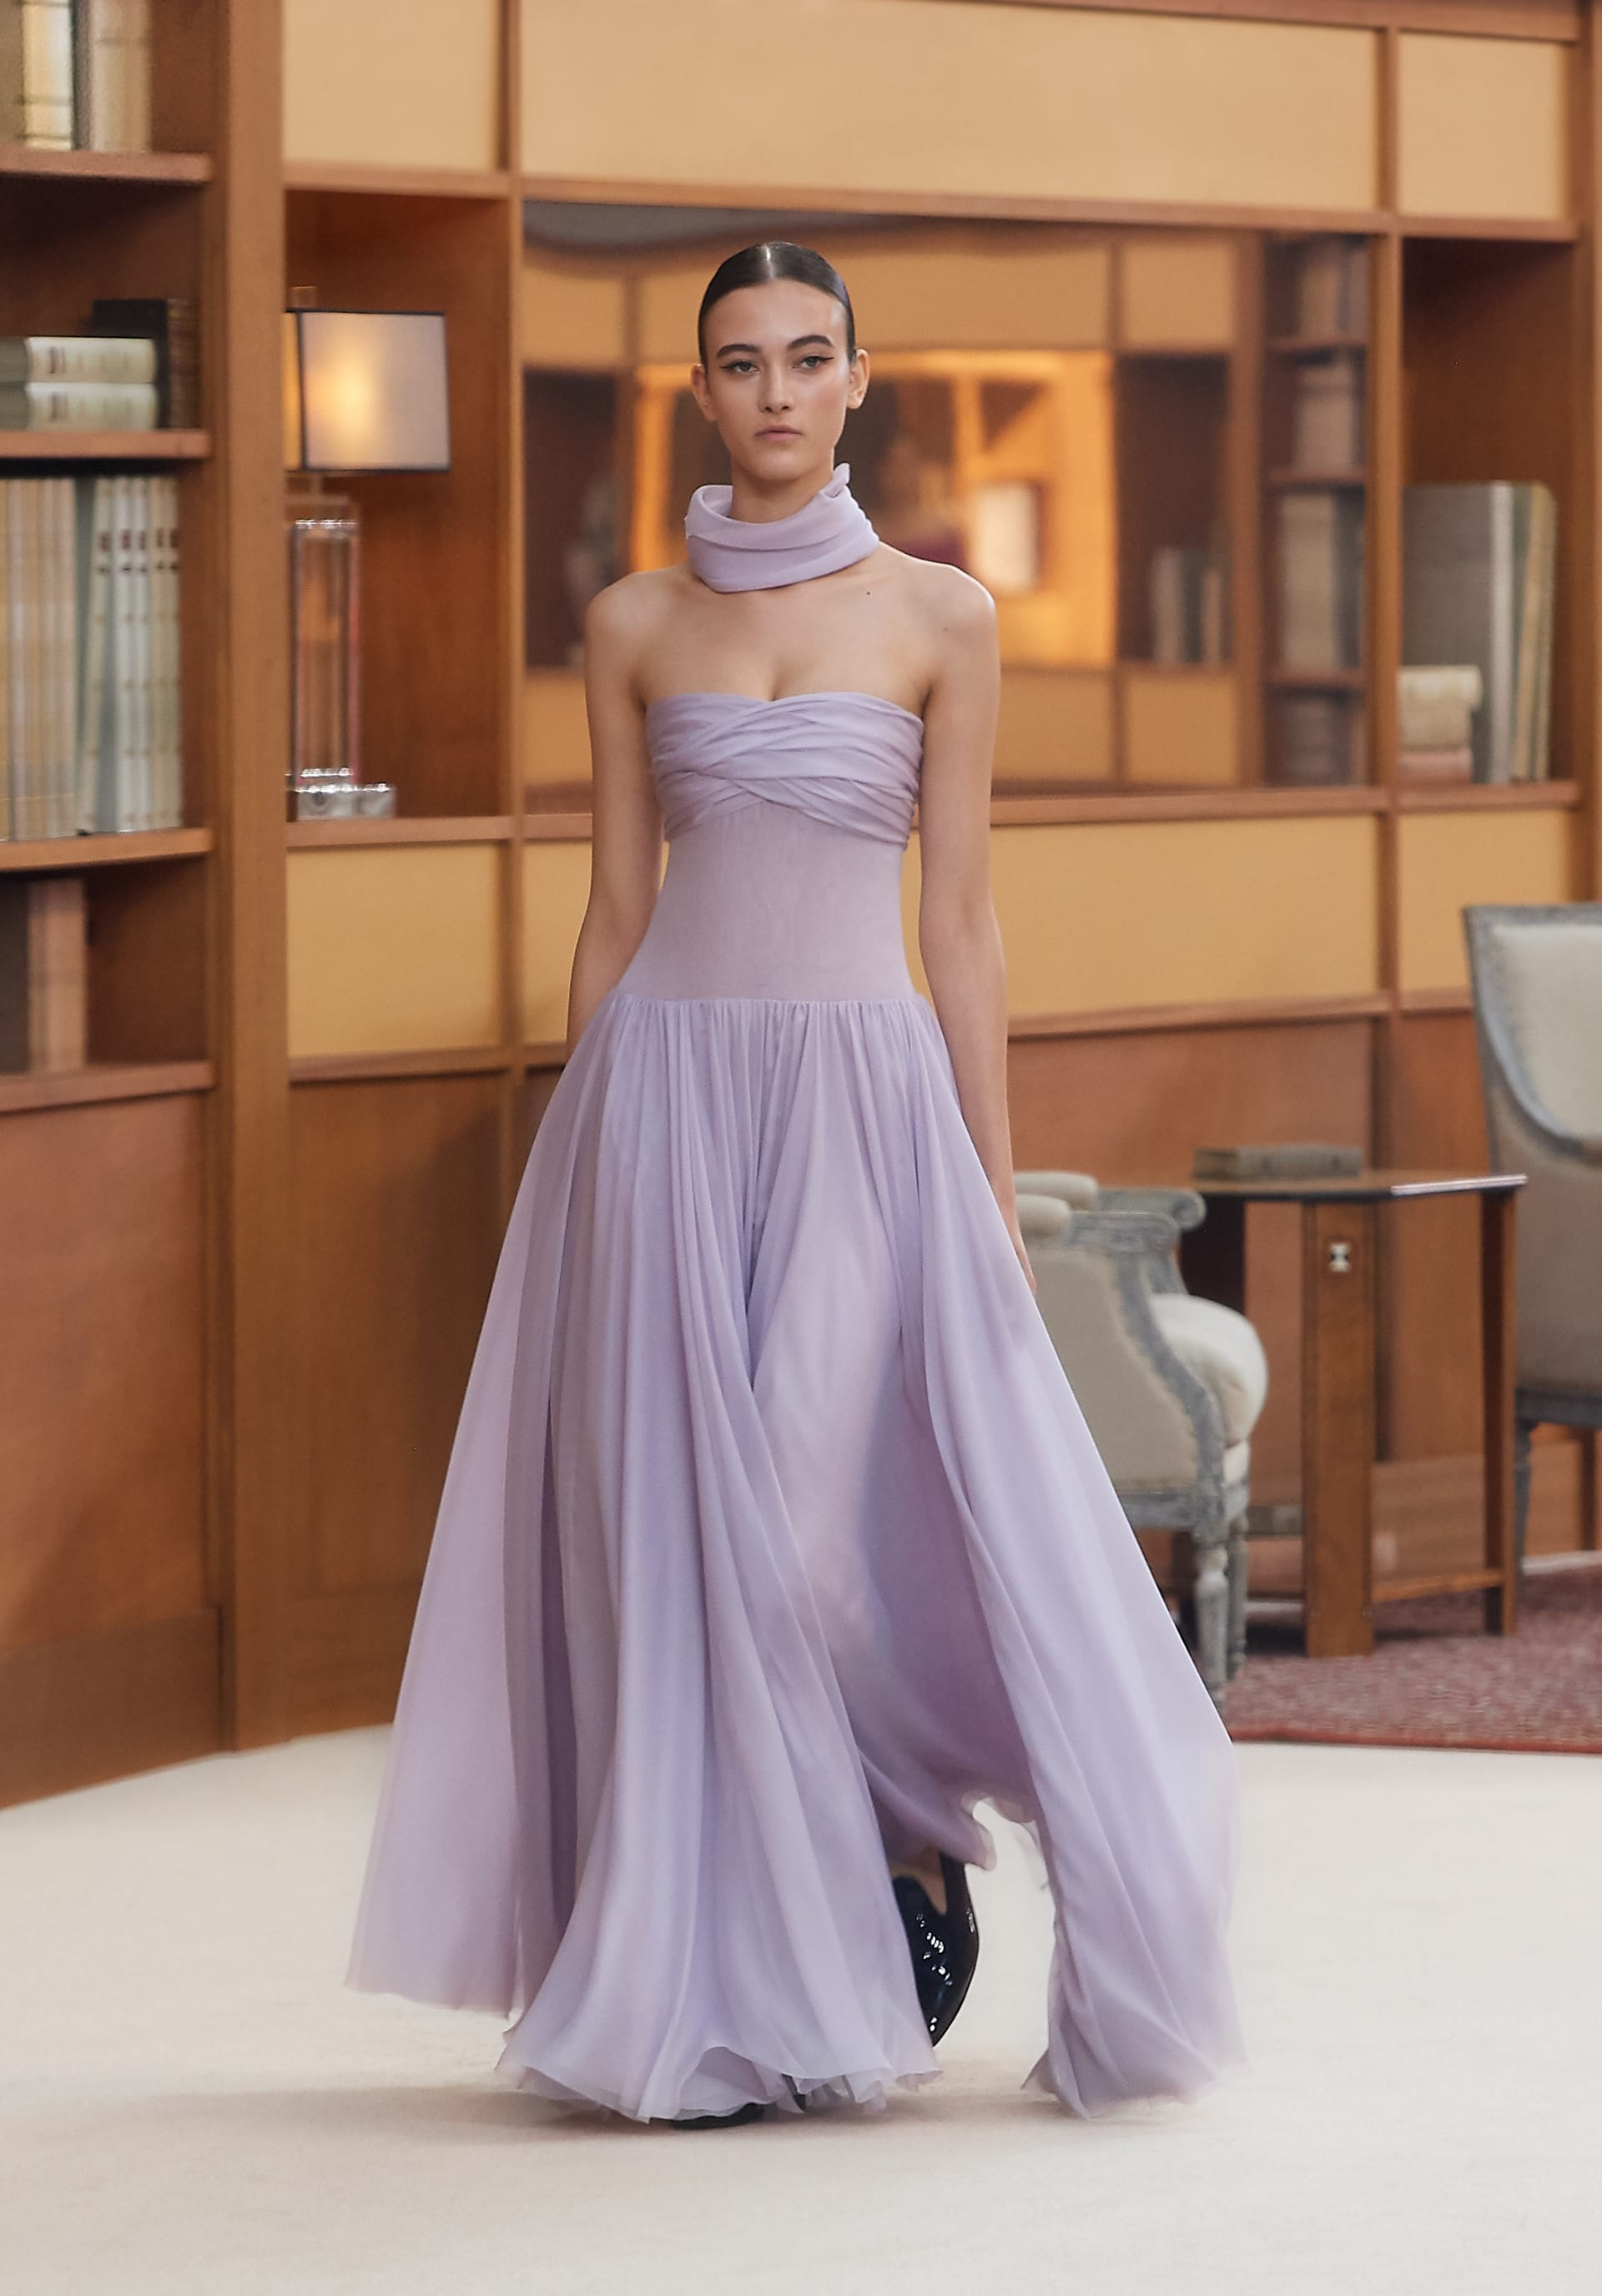 View 1 - Look 34 - Fall-Winter 2019/20 Haute-Couture - see full sized version